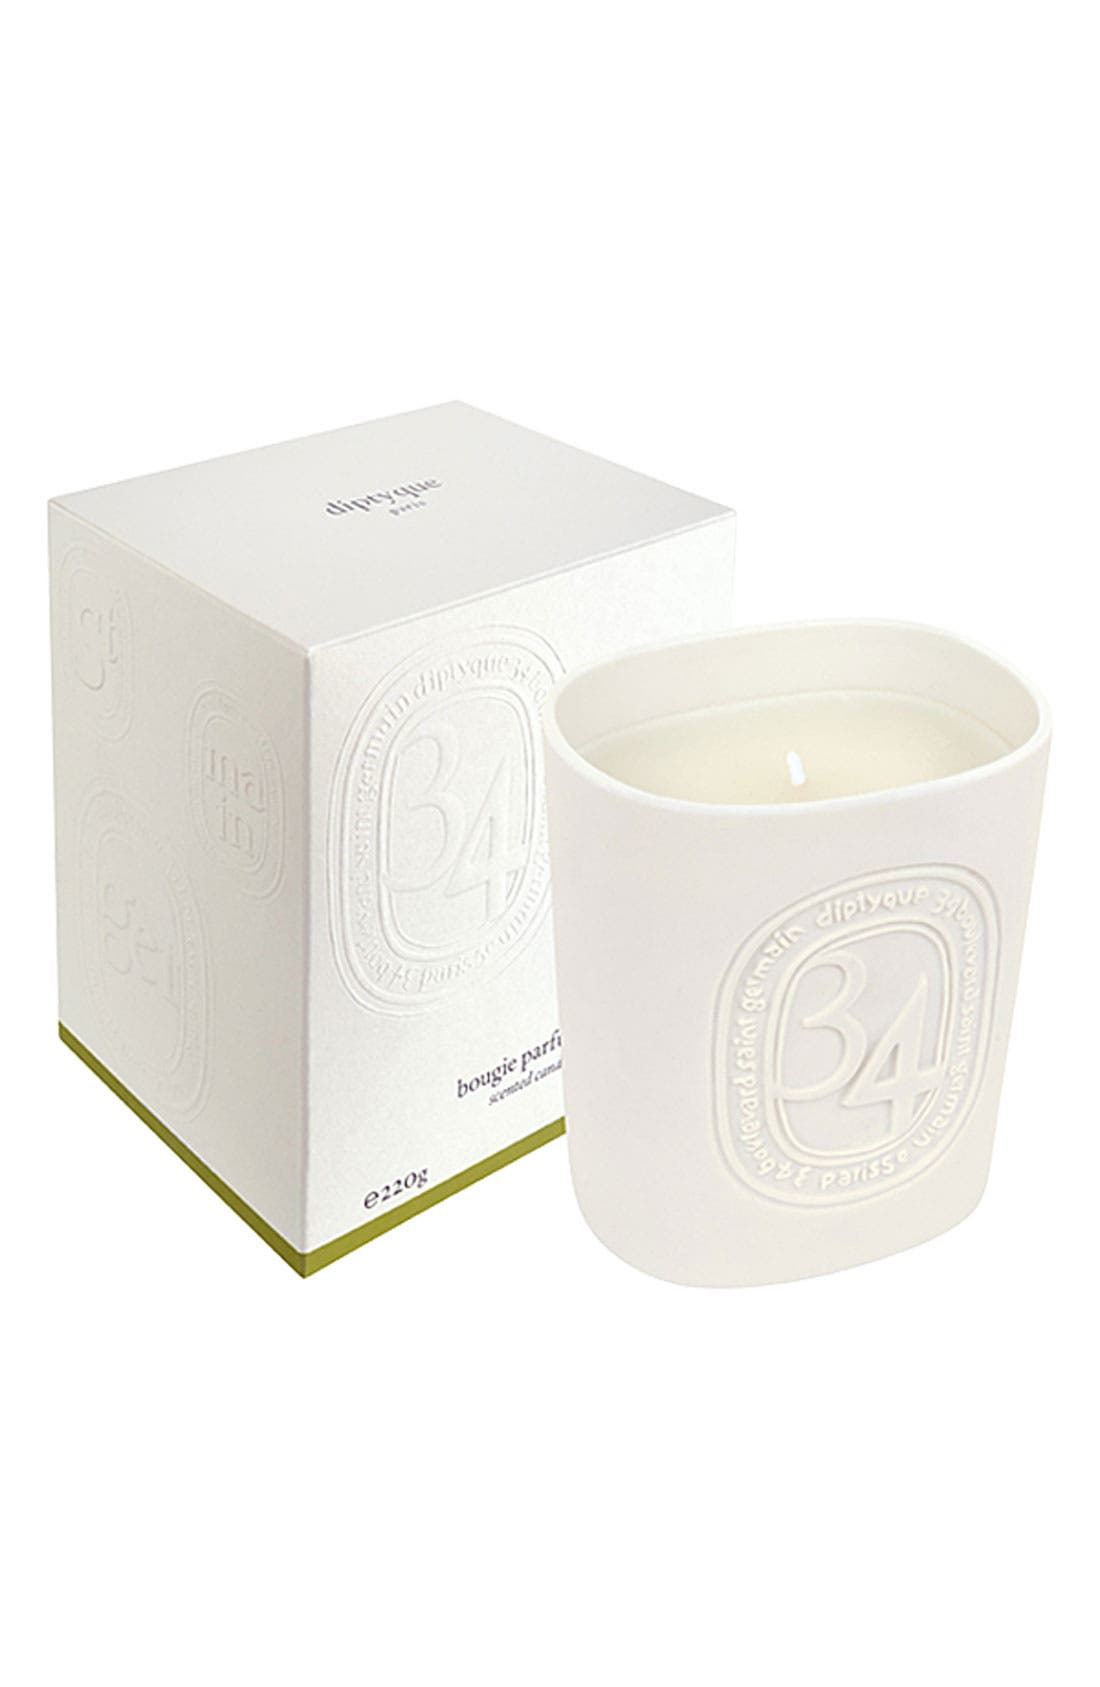 diptyque 34 Scented Candle